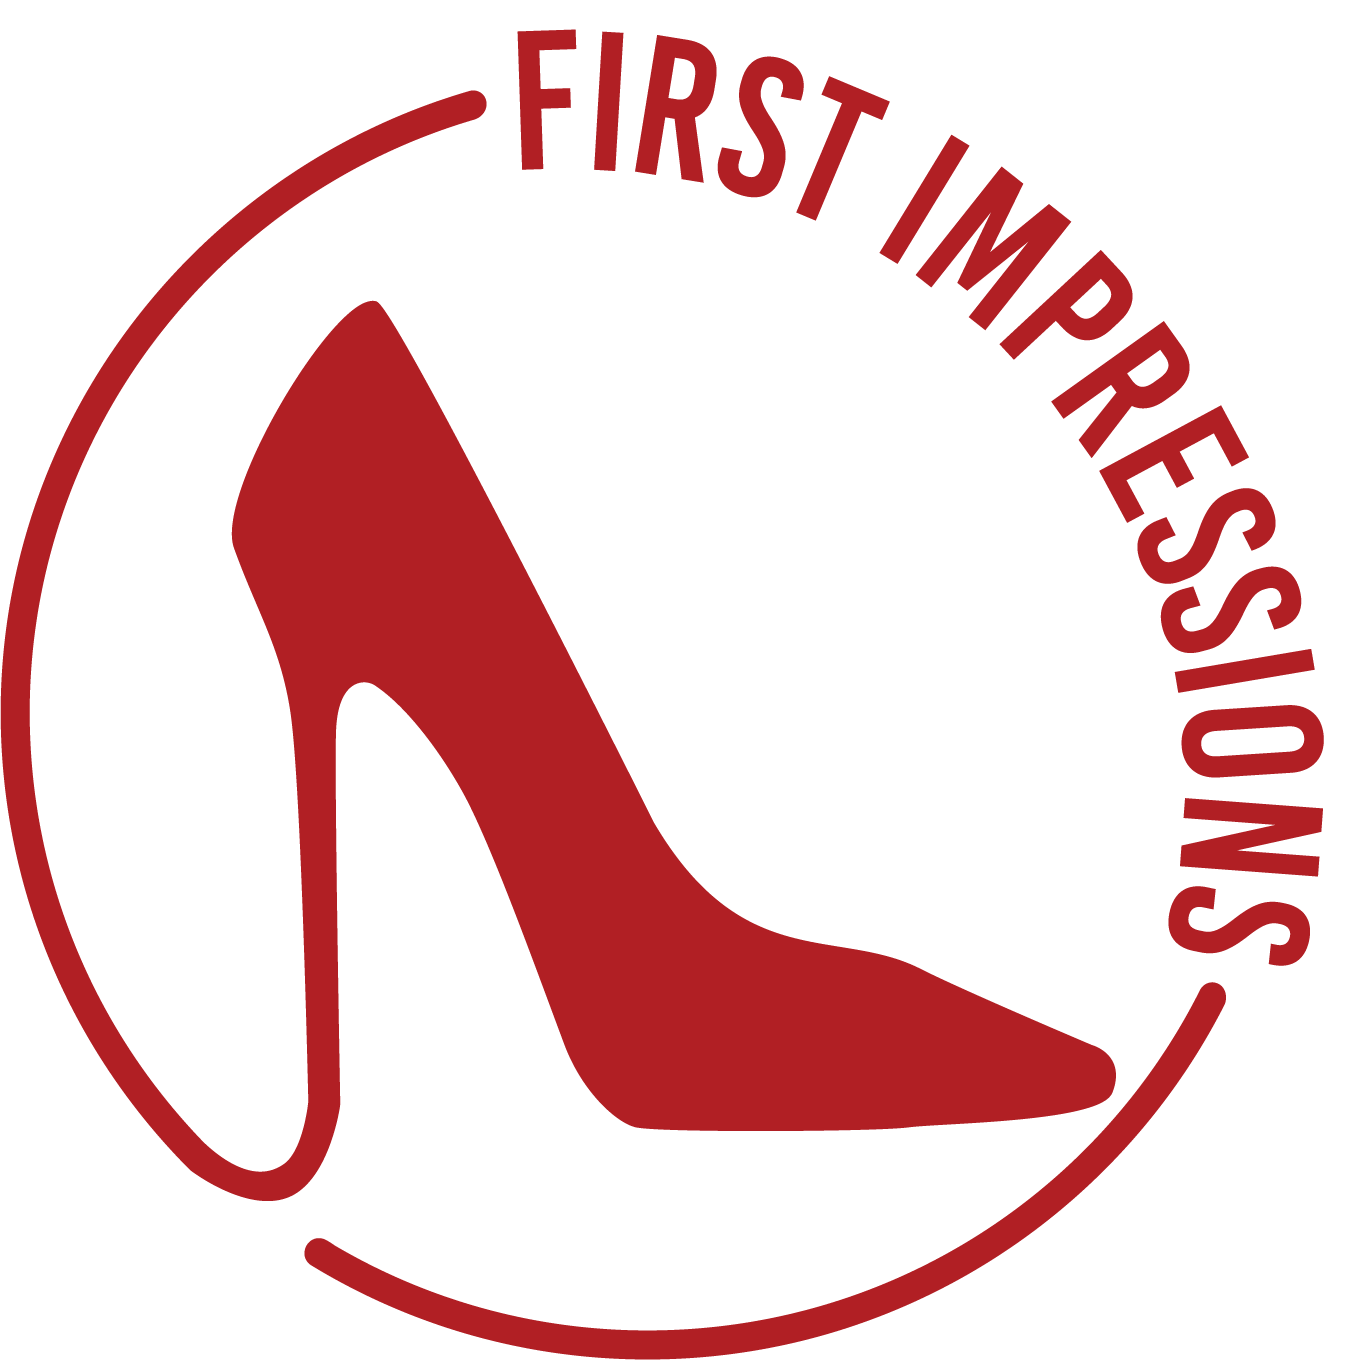 First impressions publications. Newsletter clipart publication